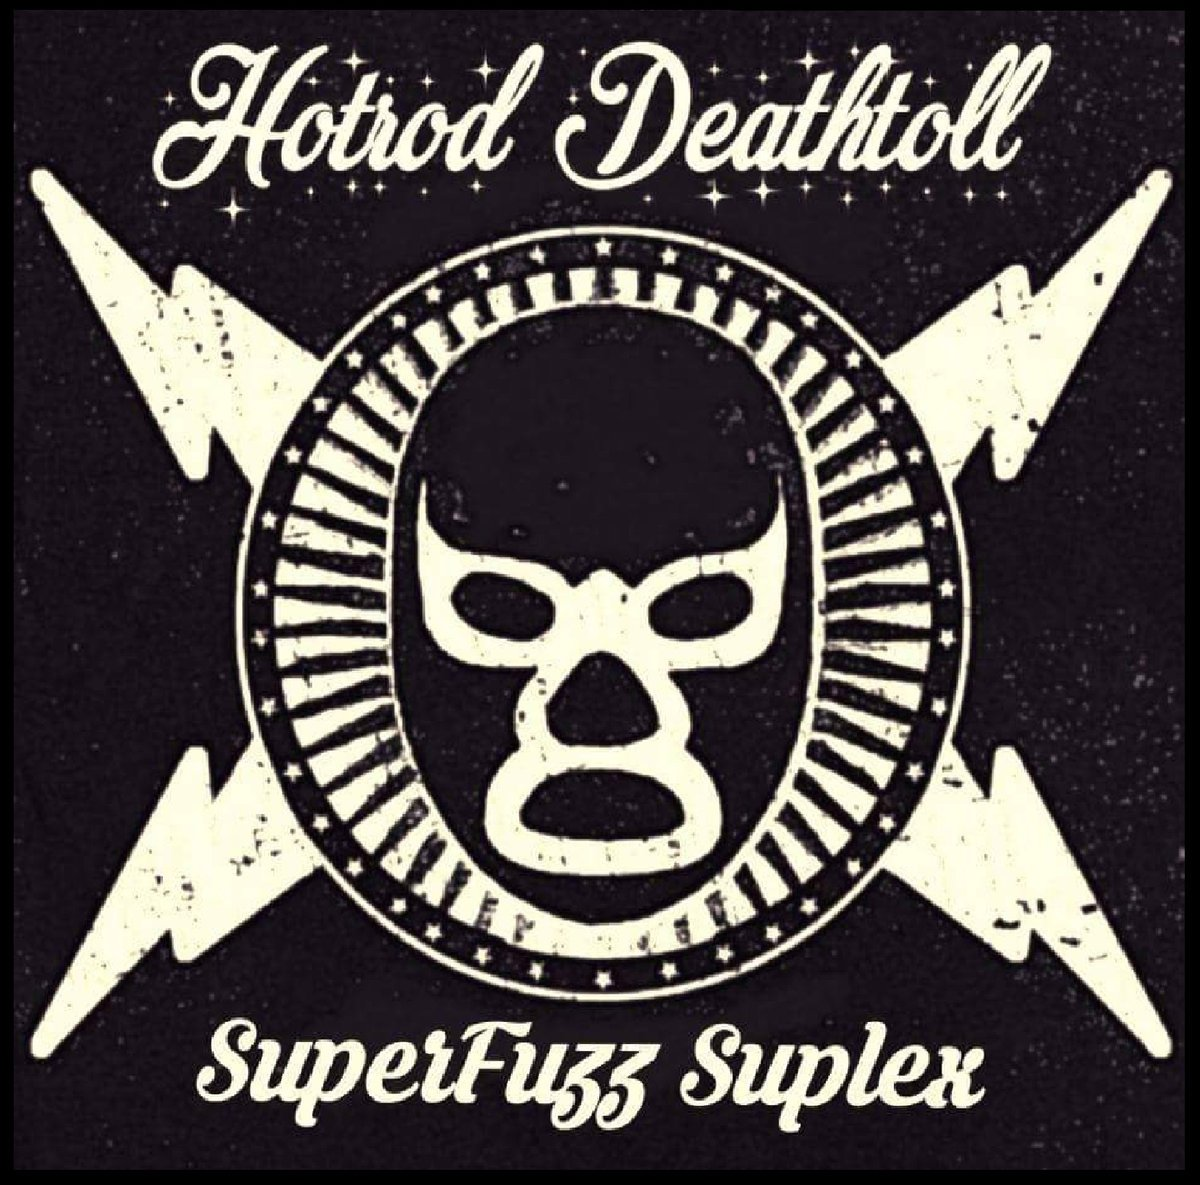 #NowPlaying Suplex by Hotrod Deathtoll #Manchester #UK - Find us at http://CapitalRockRadio.com  ! Follow us FB: https://bit.ly/2P0Fttj  INST: https://bit.ly/2O0ltL5  #AlternativeRock #IndieRock #StonerRock #PsychRock